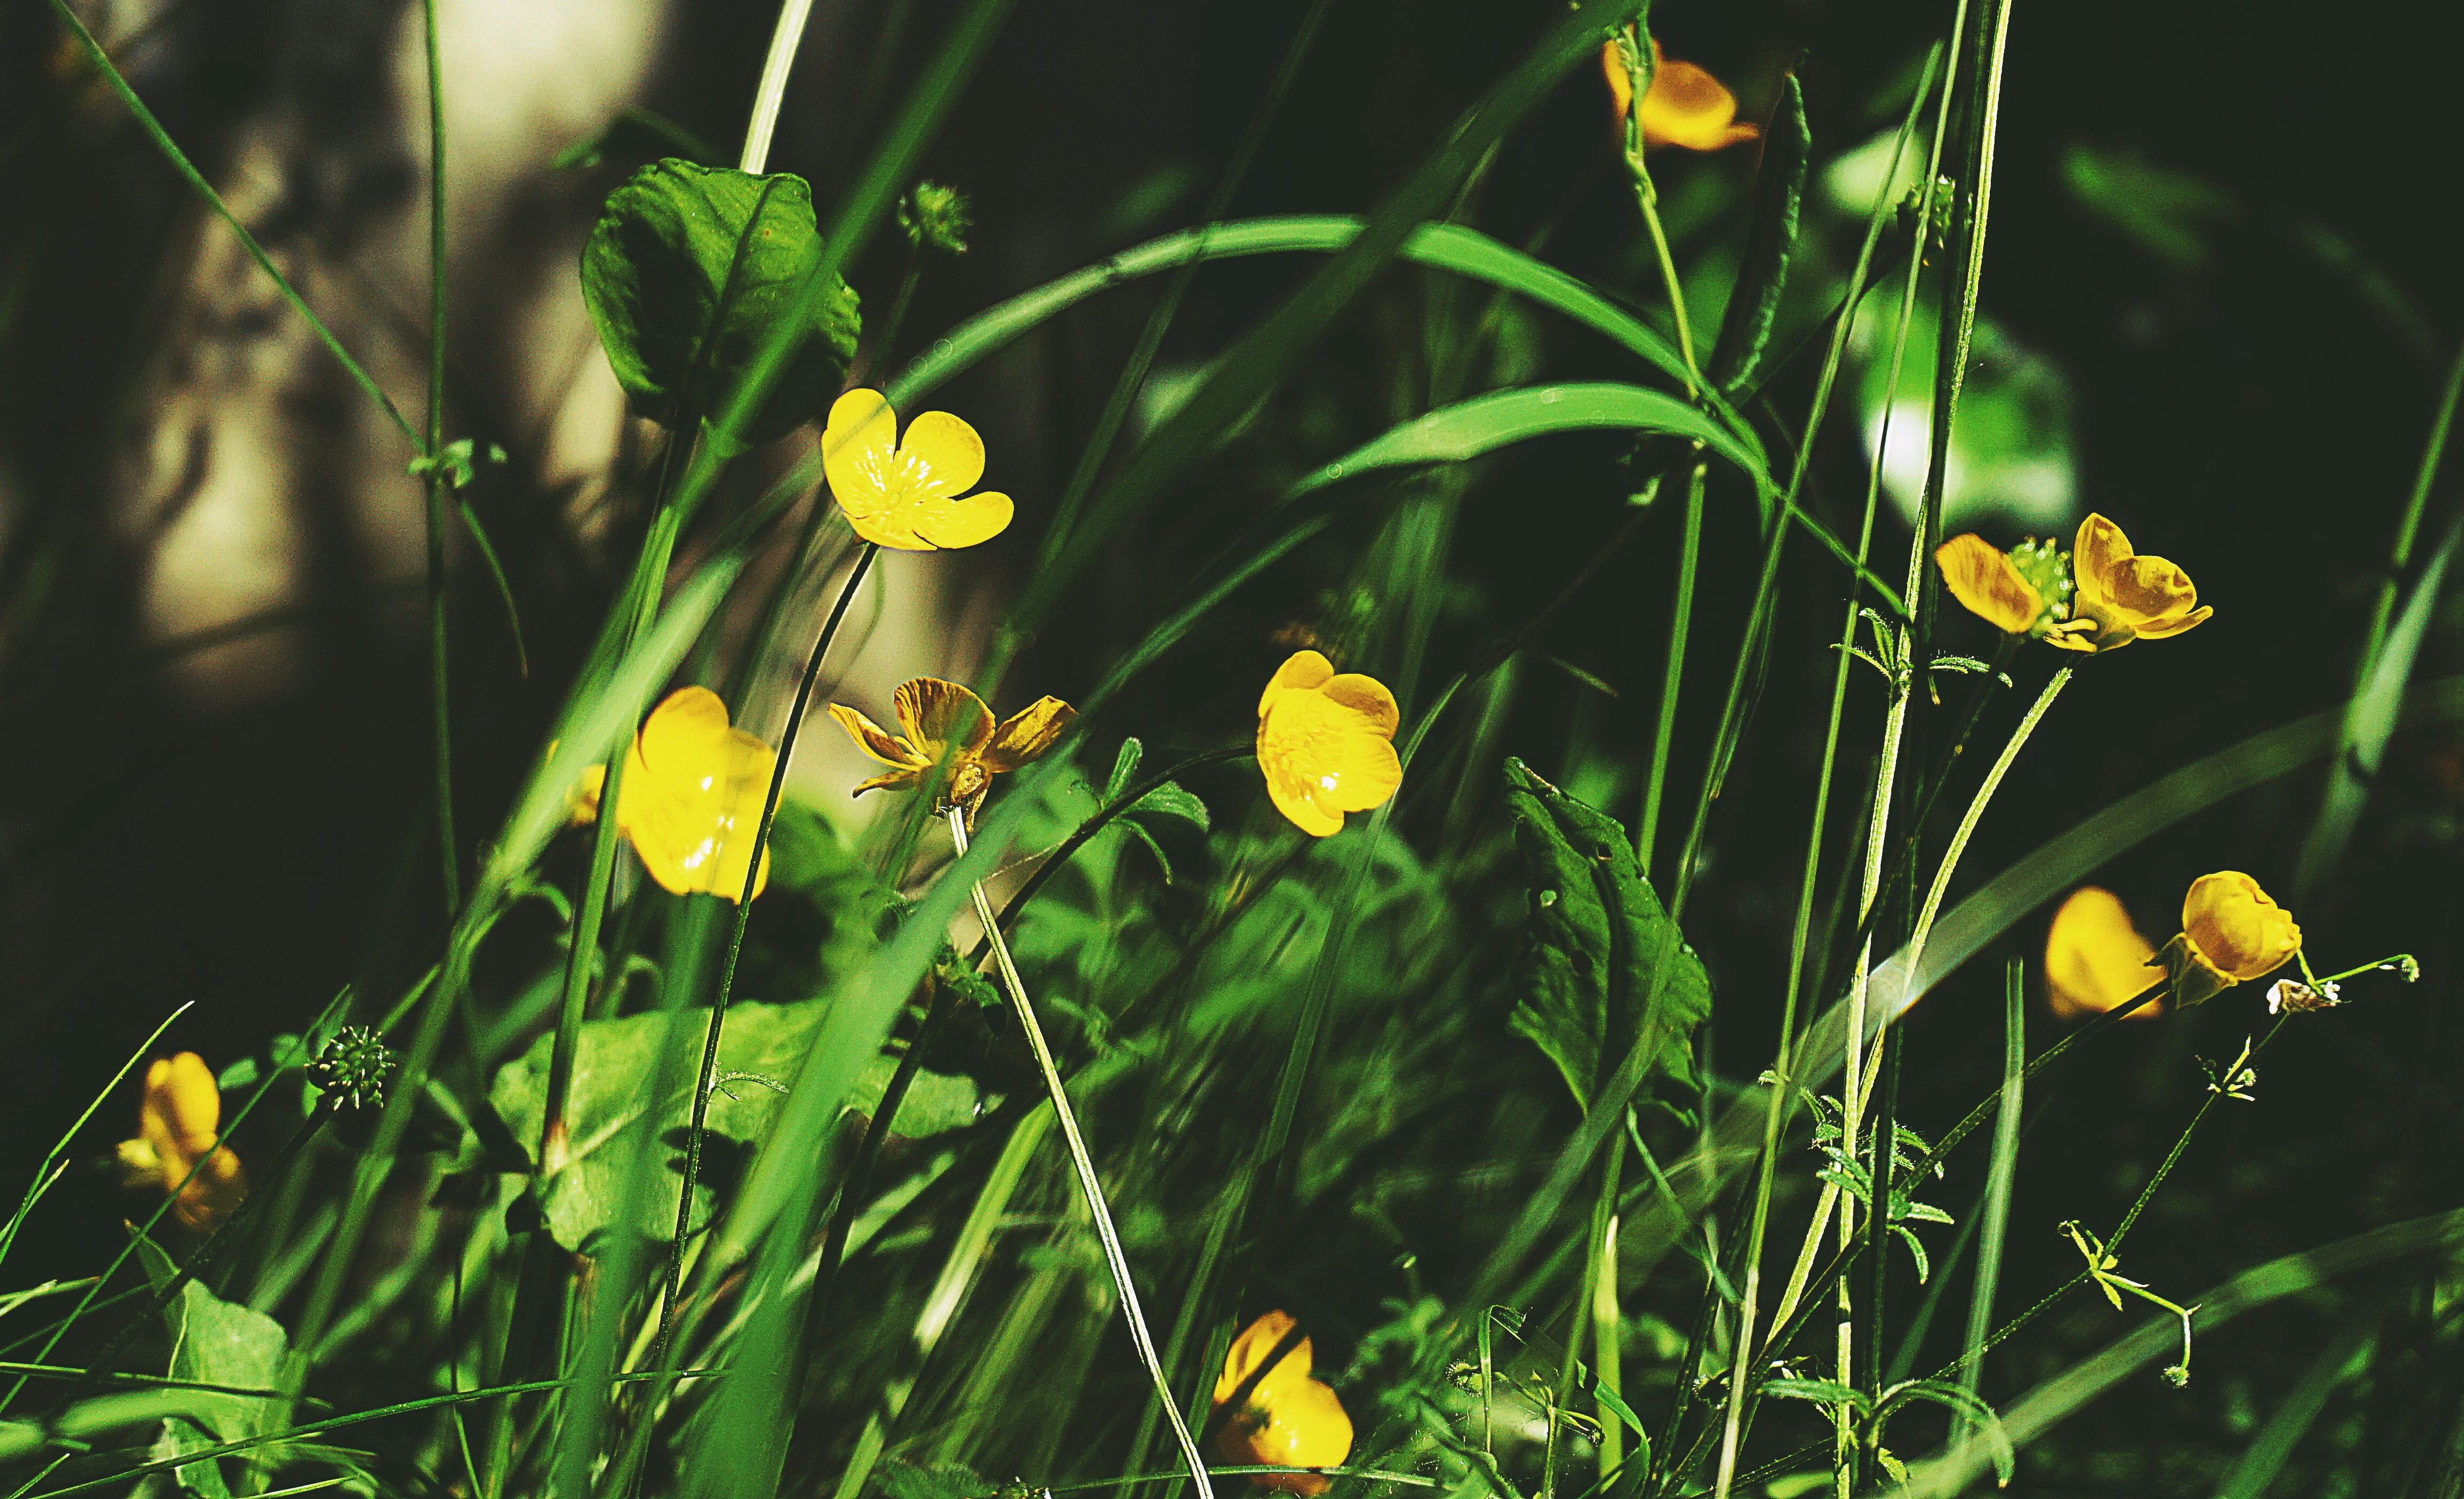 Selective Focus Photography of Yellow Petaled Flowers